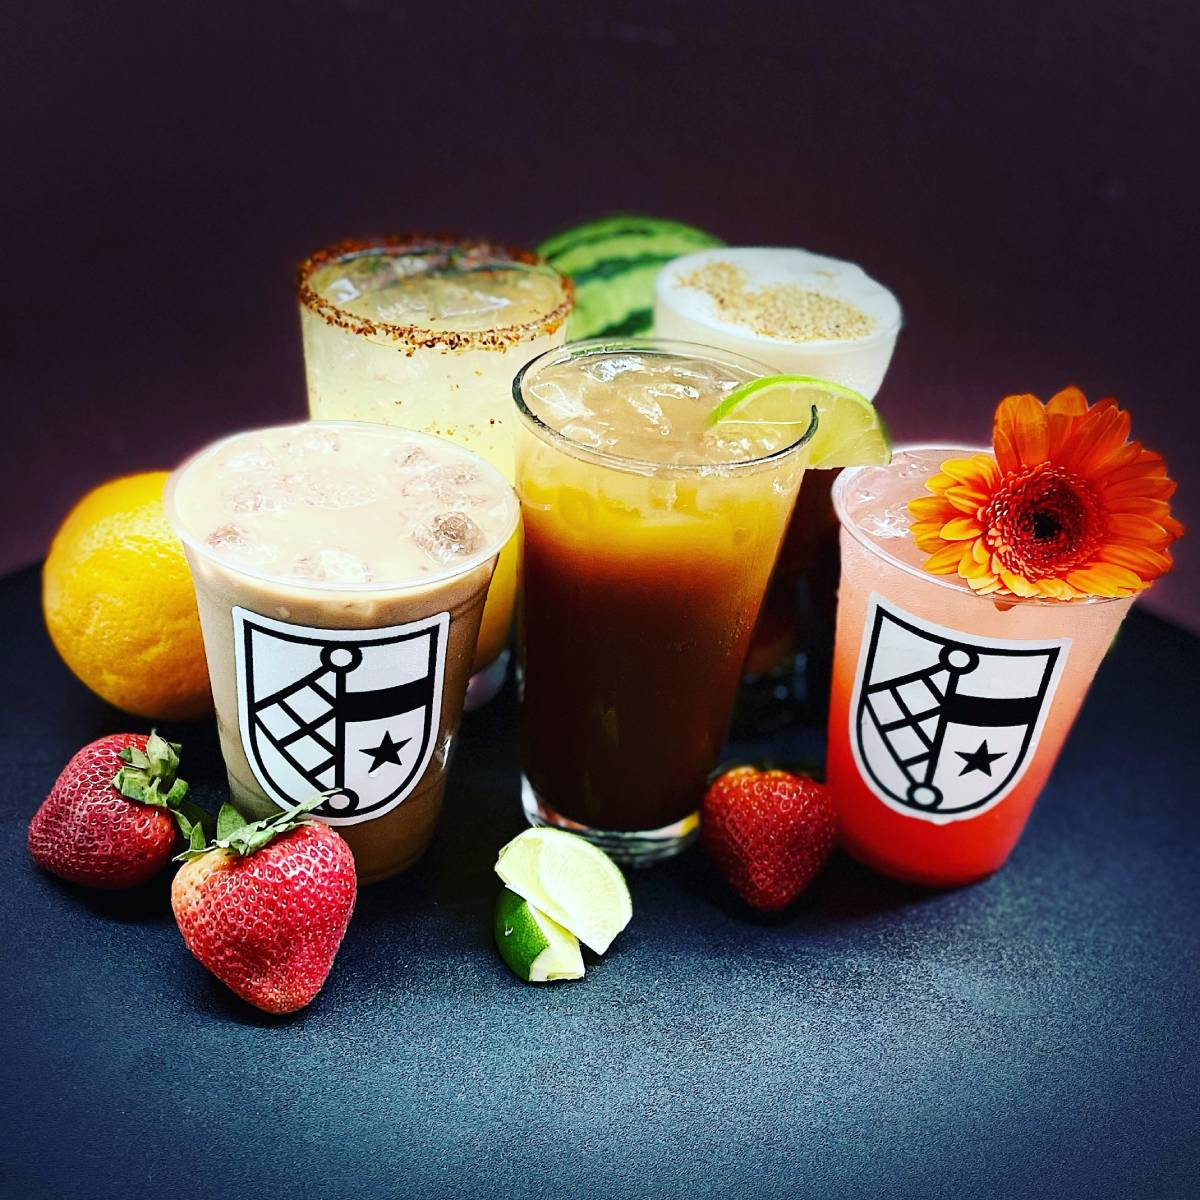 Mouthwatering Summer Specials at SOCO + The OC Mix